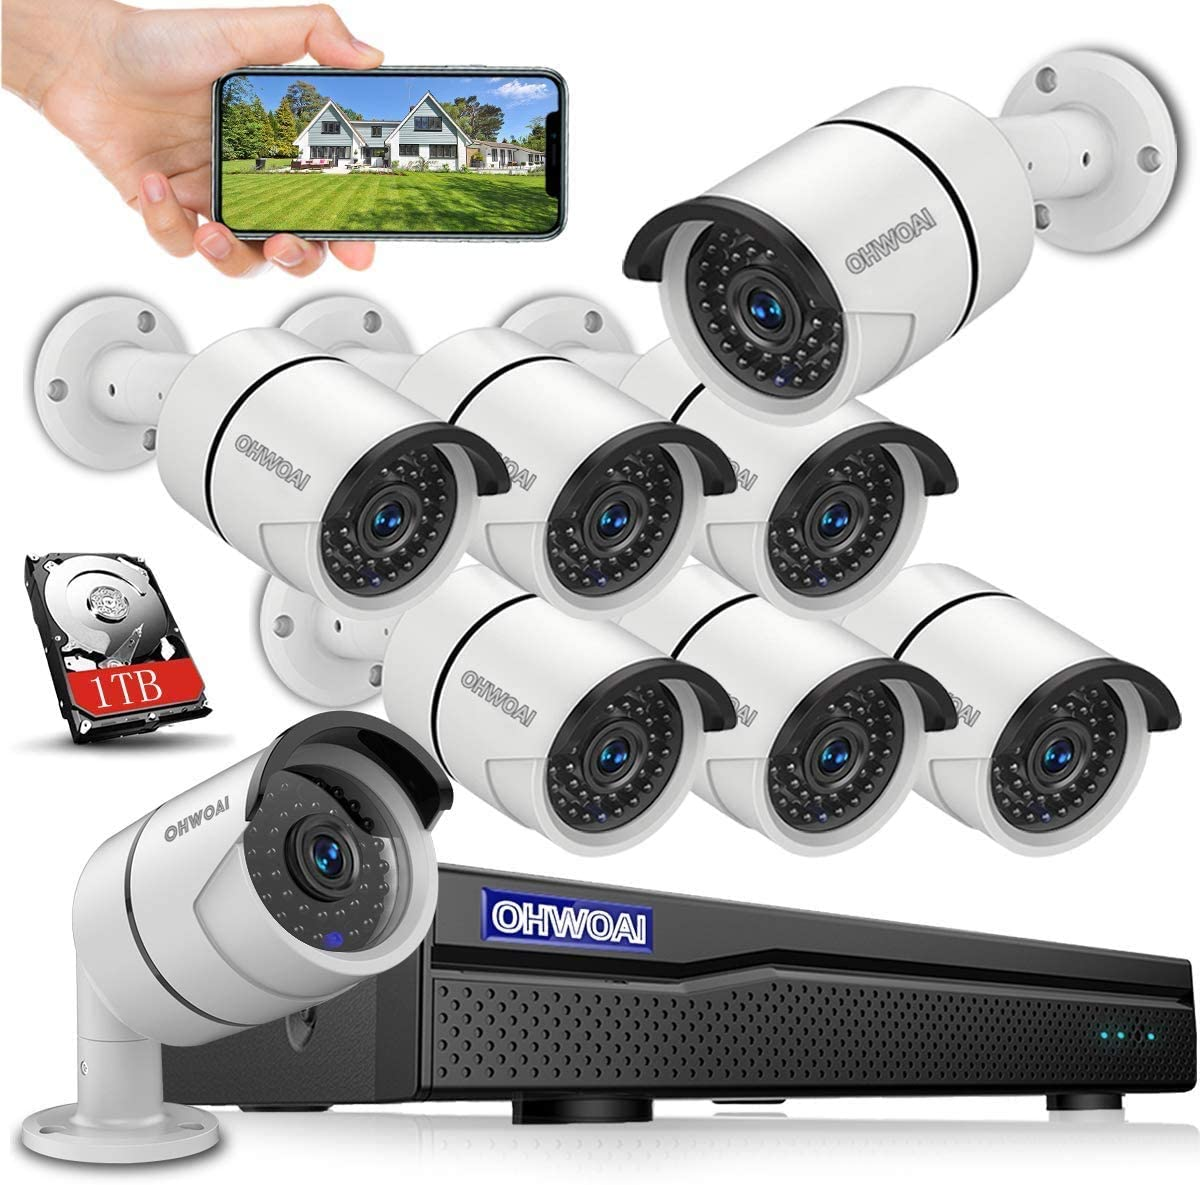 ?8CH 5MP DVR? Wired 8ch Home Security Camera Outdoor System with Hard Drive,DVR Video Surveillance Security Camera System,Surveillance DVR Kits,8pcs 1080p Security Camera Outdoor Wired,APP